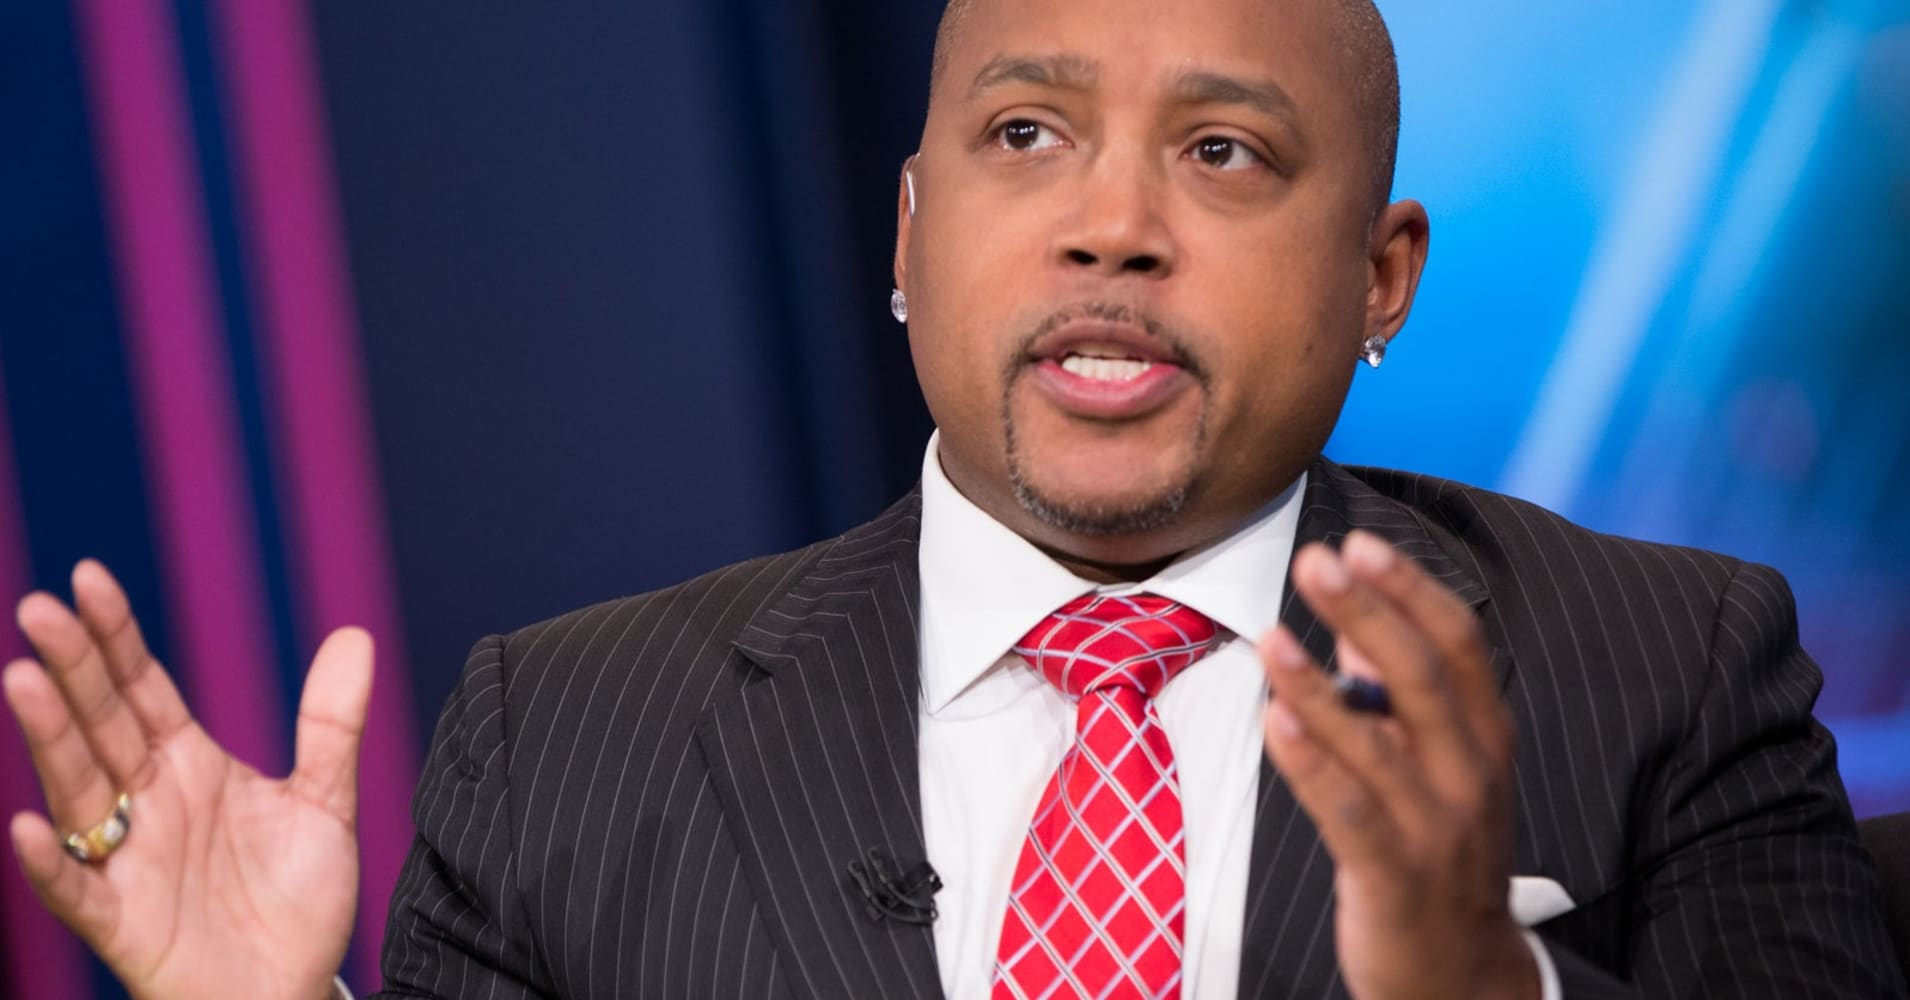 It's not just moguls like Daymond John who discuss the importance of gratitude. Science says it boosts your chances of success.